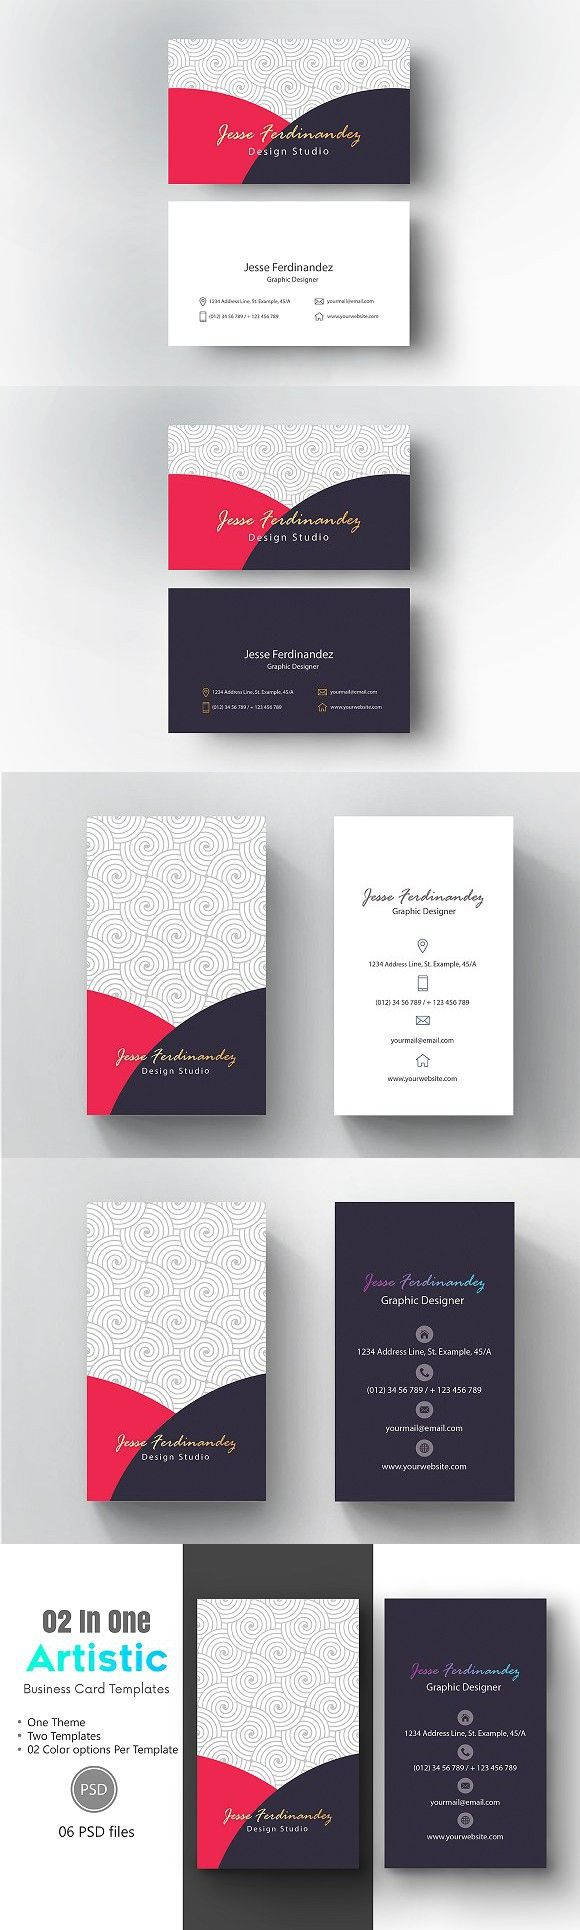 Artistic Business Card Template 008 Business Card Template Artist Business Cards Double Sided Business Cards